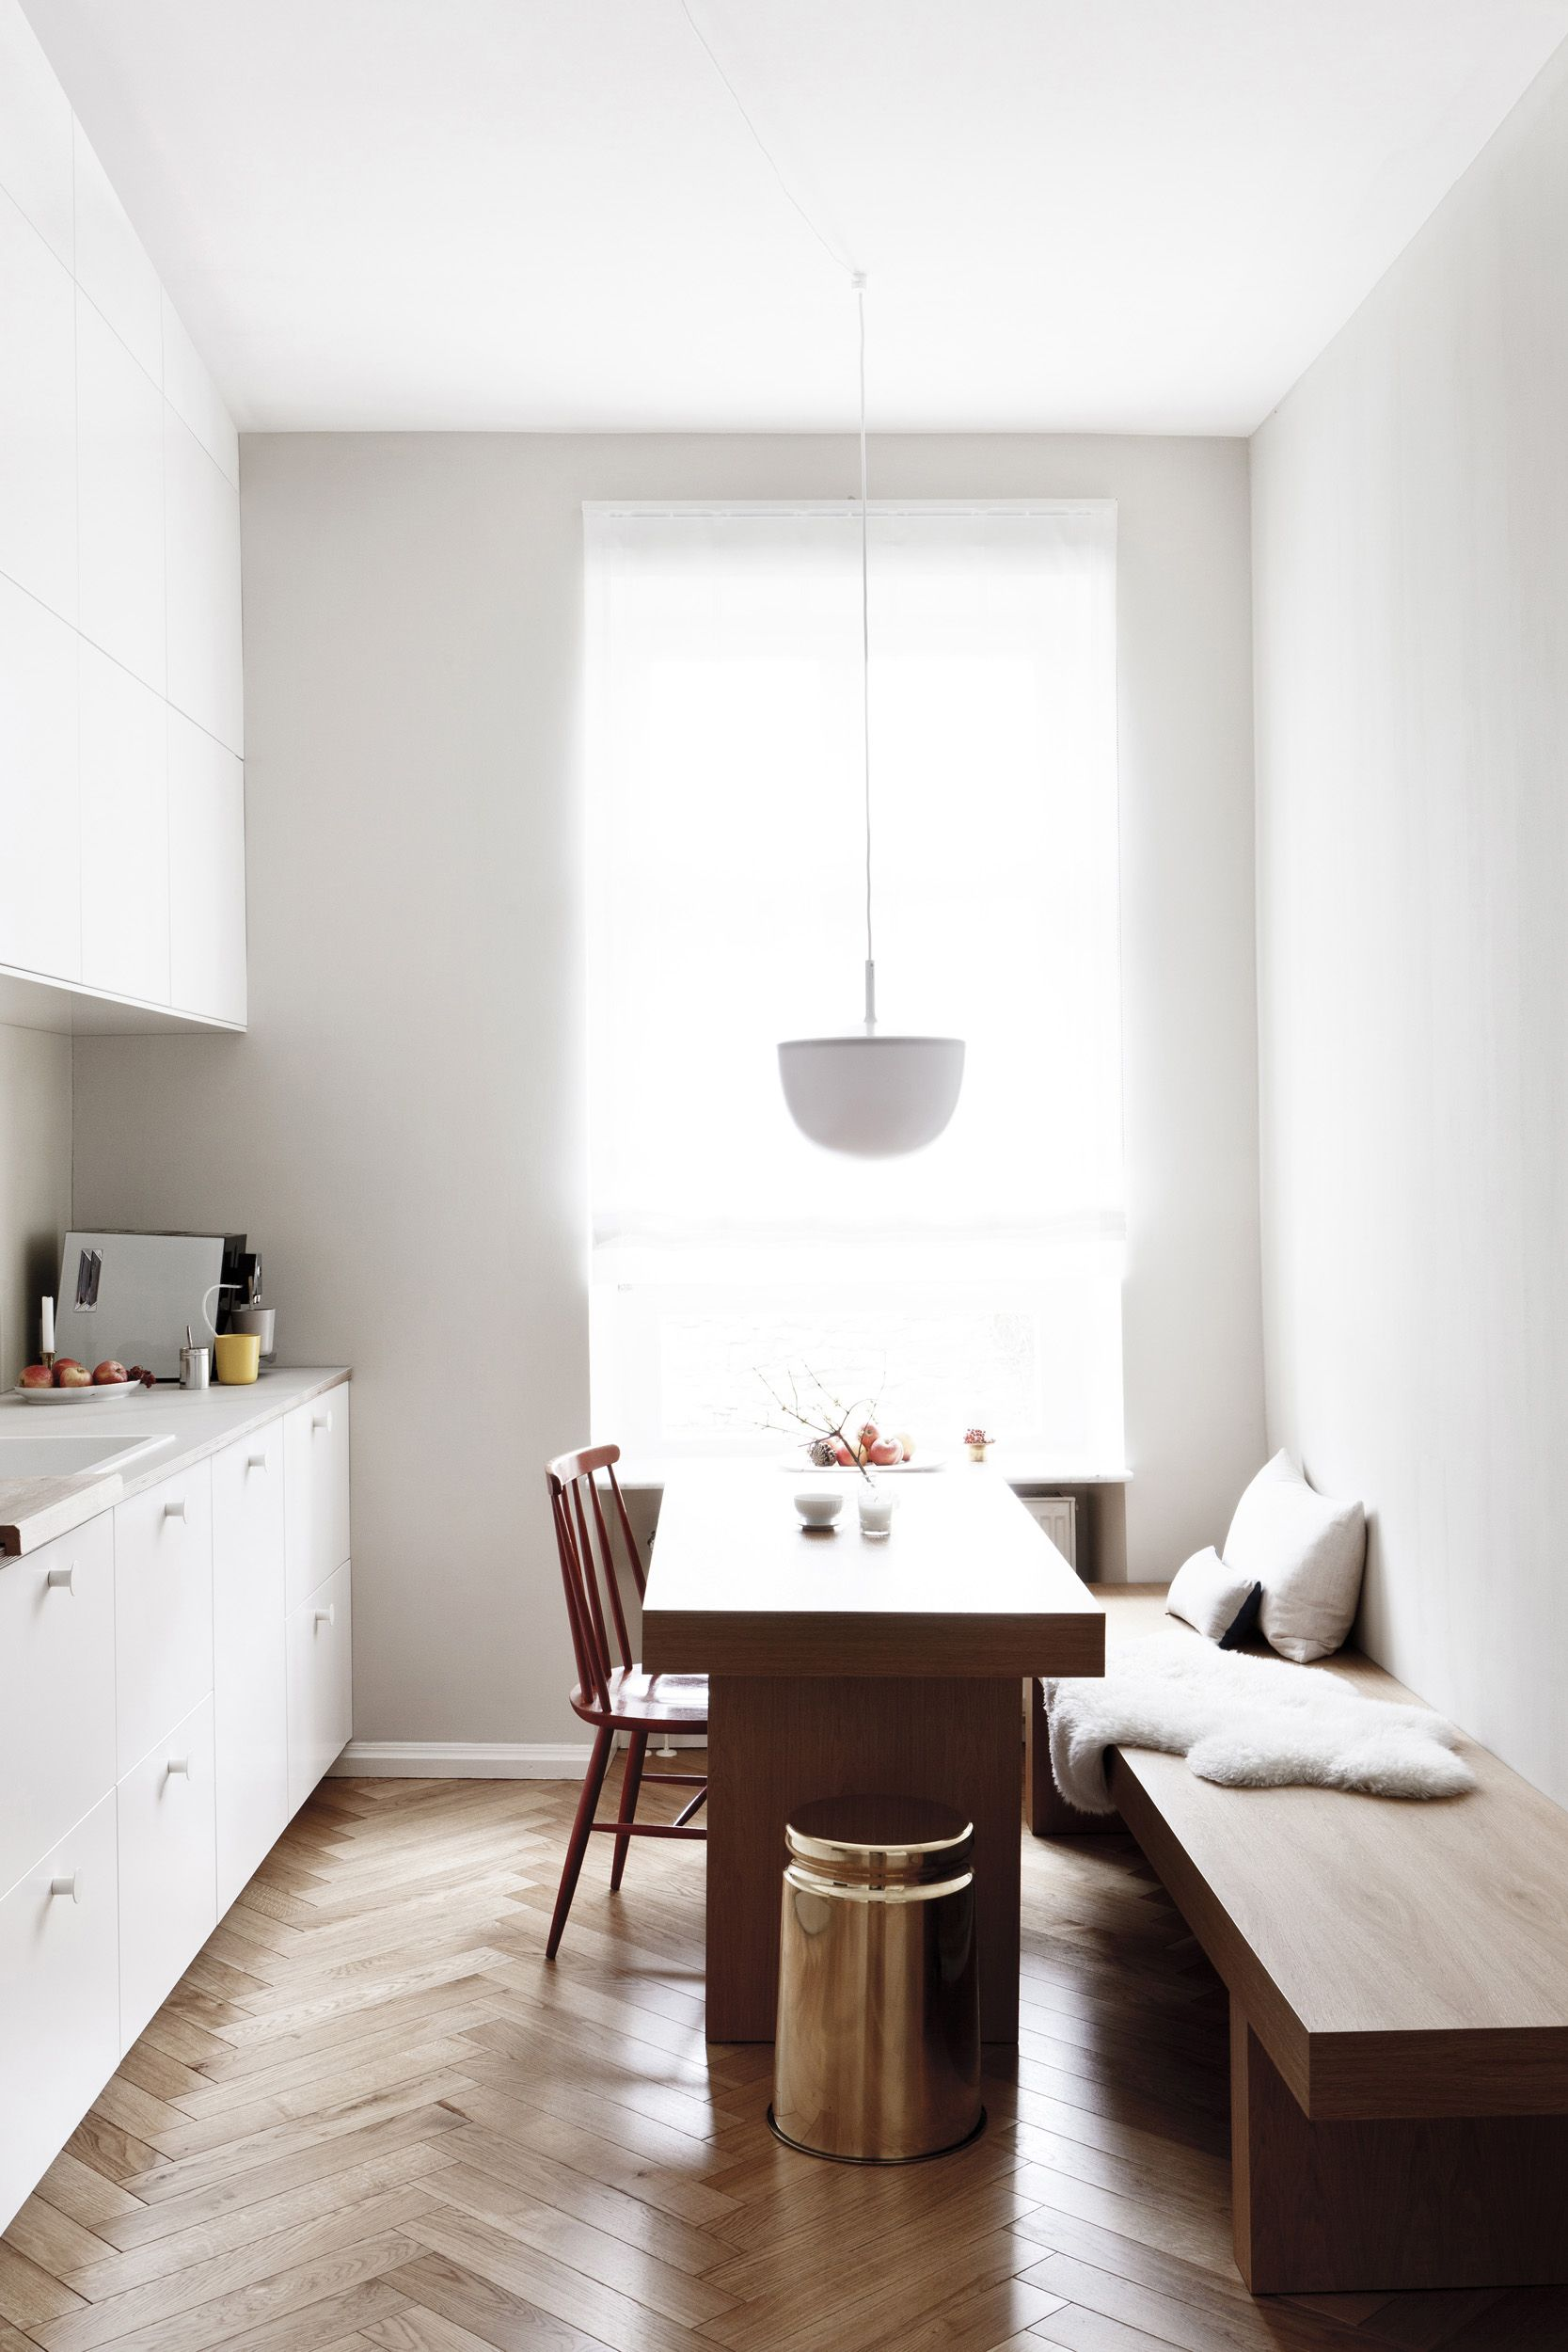 Customized ikea kitchen in a luxe minimalist apartment remodel by studio oink in mainz germany remodelista